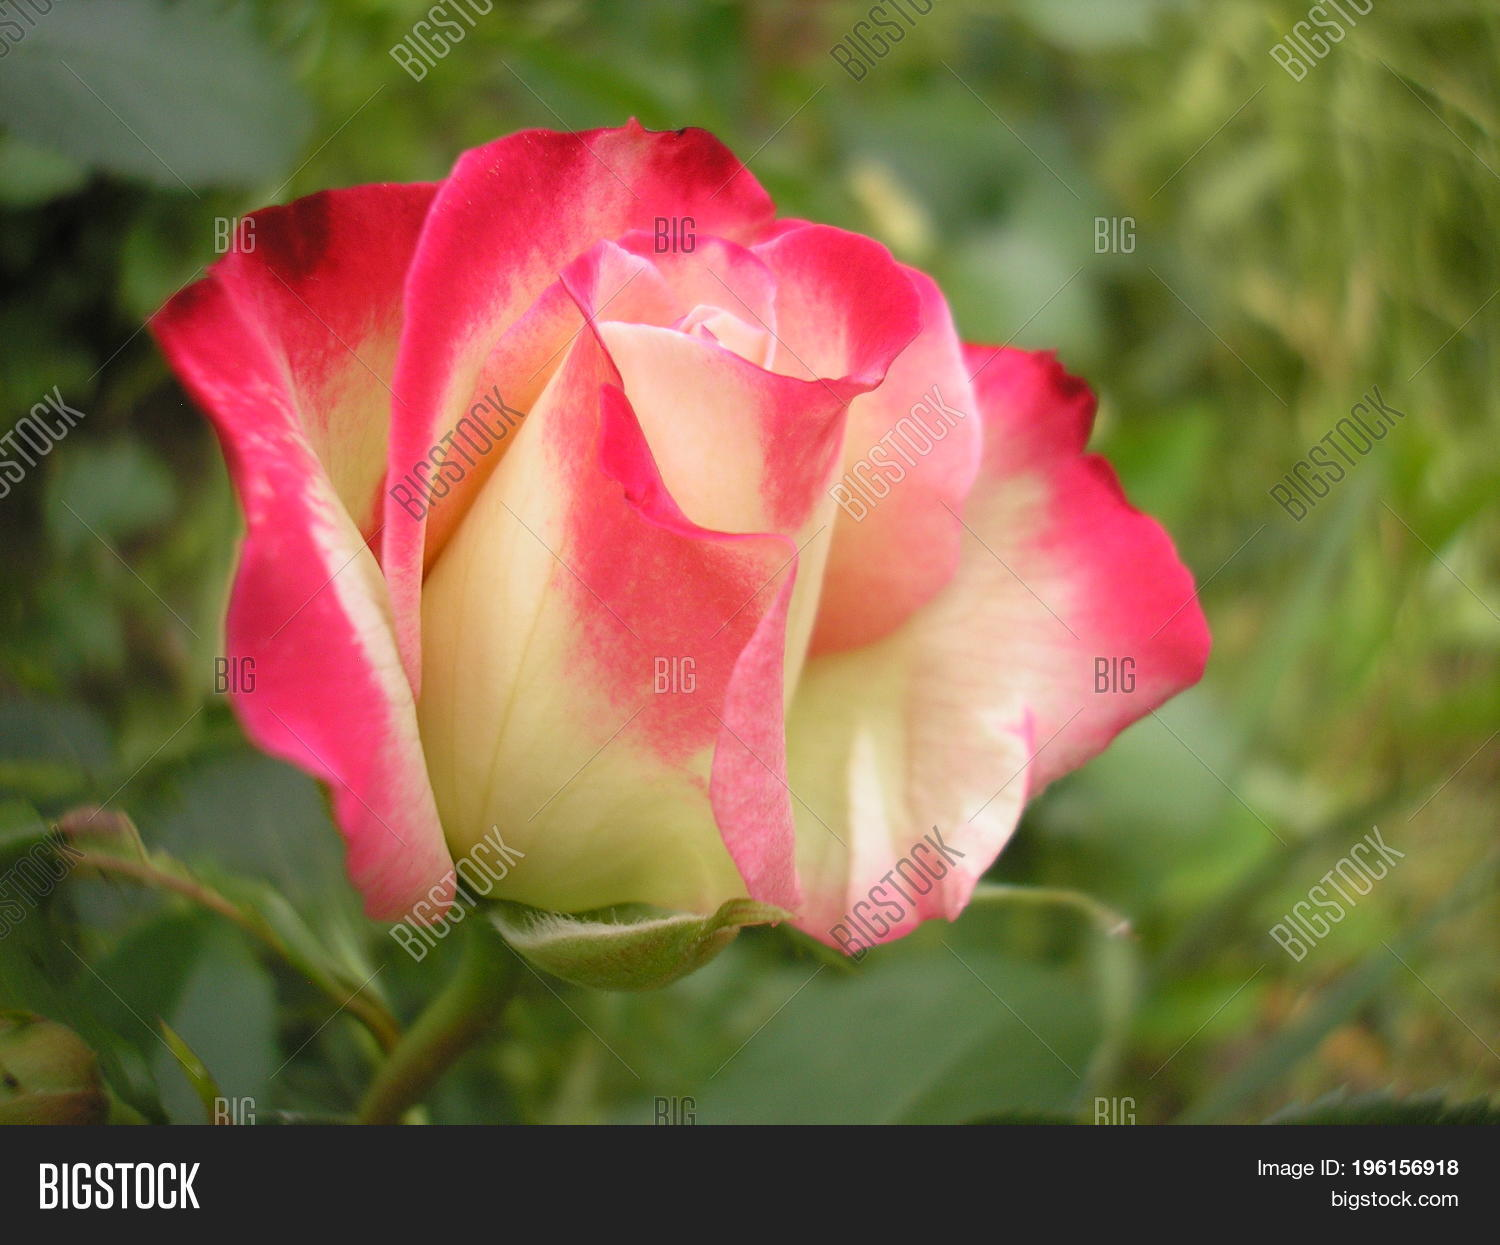 Rose queen flowers image photo free trial bigstock rose is the queen of flowers photo of a beautiful rose in the garden izmirmasajfo